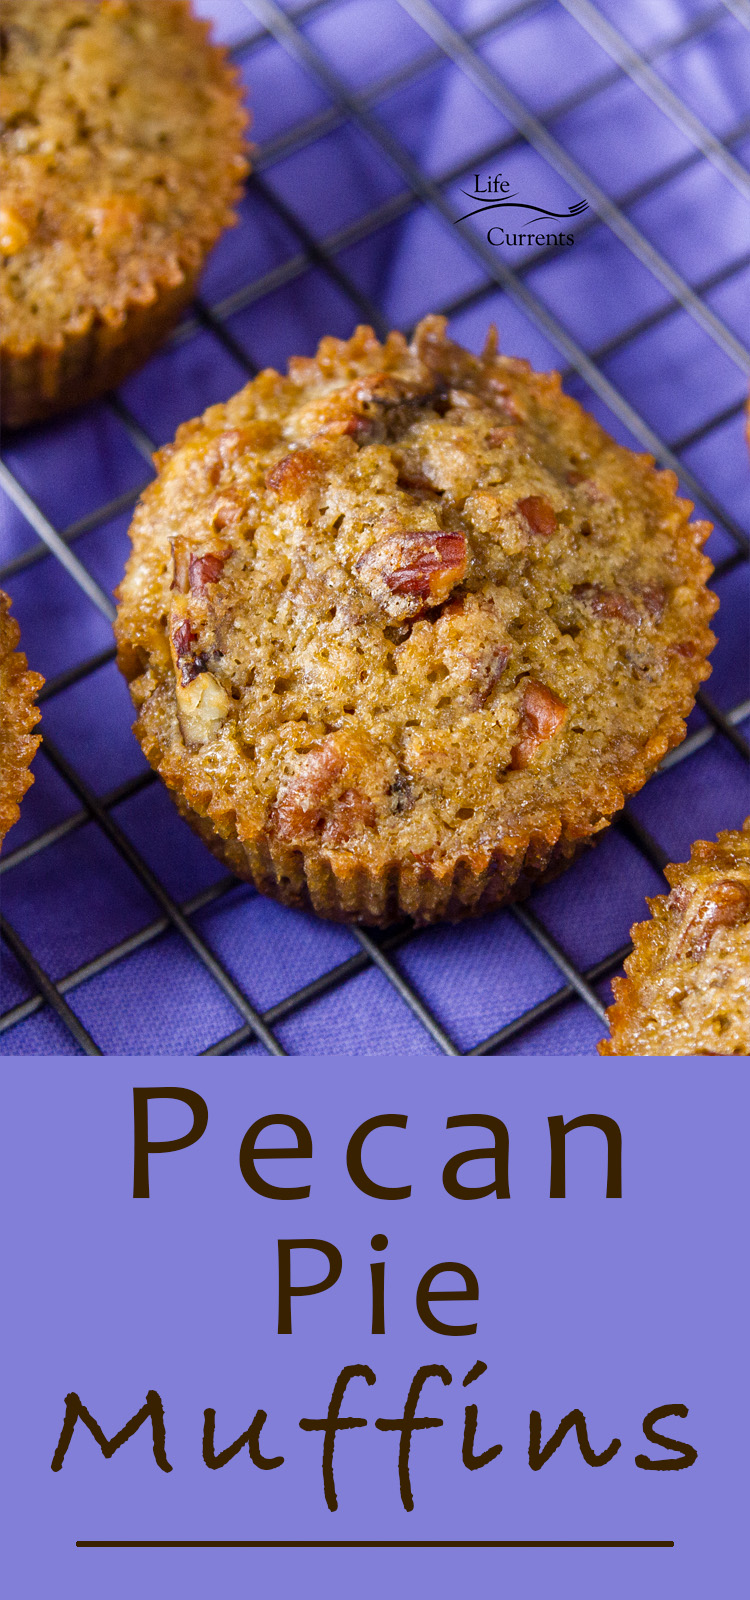 With just 5 ingredients, these Pecan Pie Muffins are super easy to make and really delicious to eat!